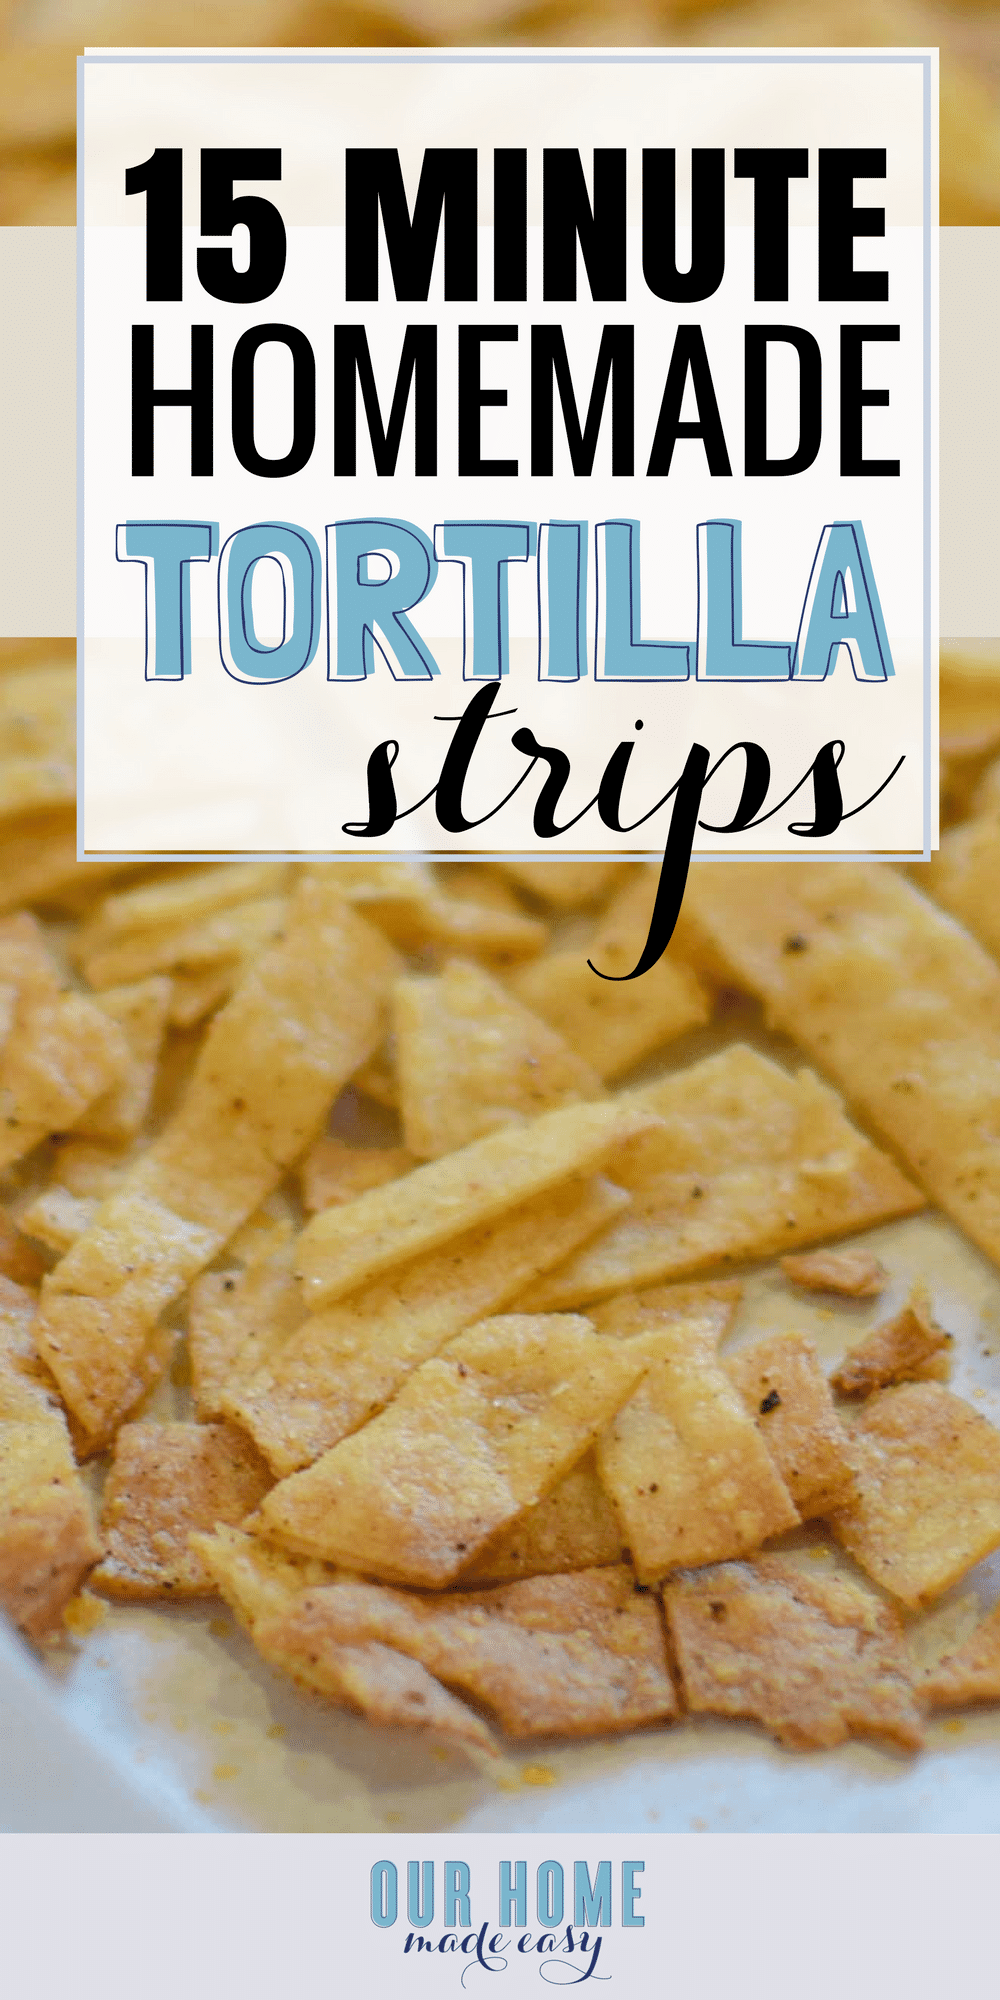 Make your own yummy baked tortilla strips in about 15 minutes! Not only do they taste AMAZING, but they are even healthier homemade! Get the recipe here! #tortilla #chips #mexicanfood